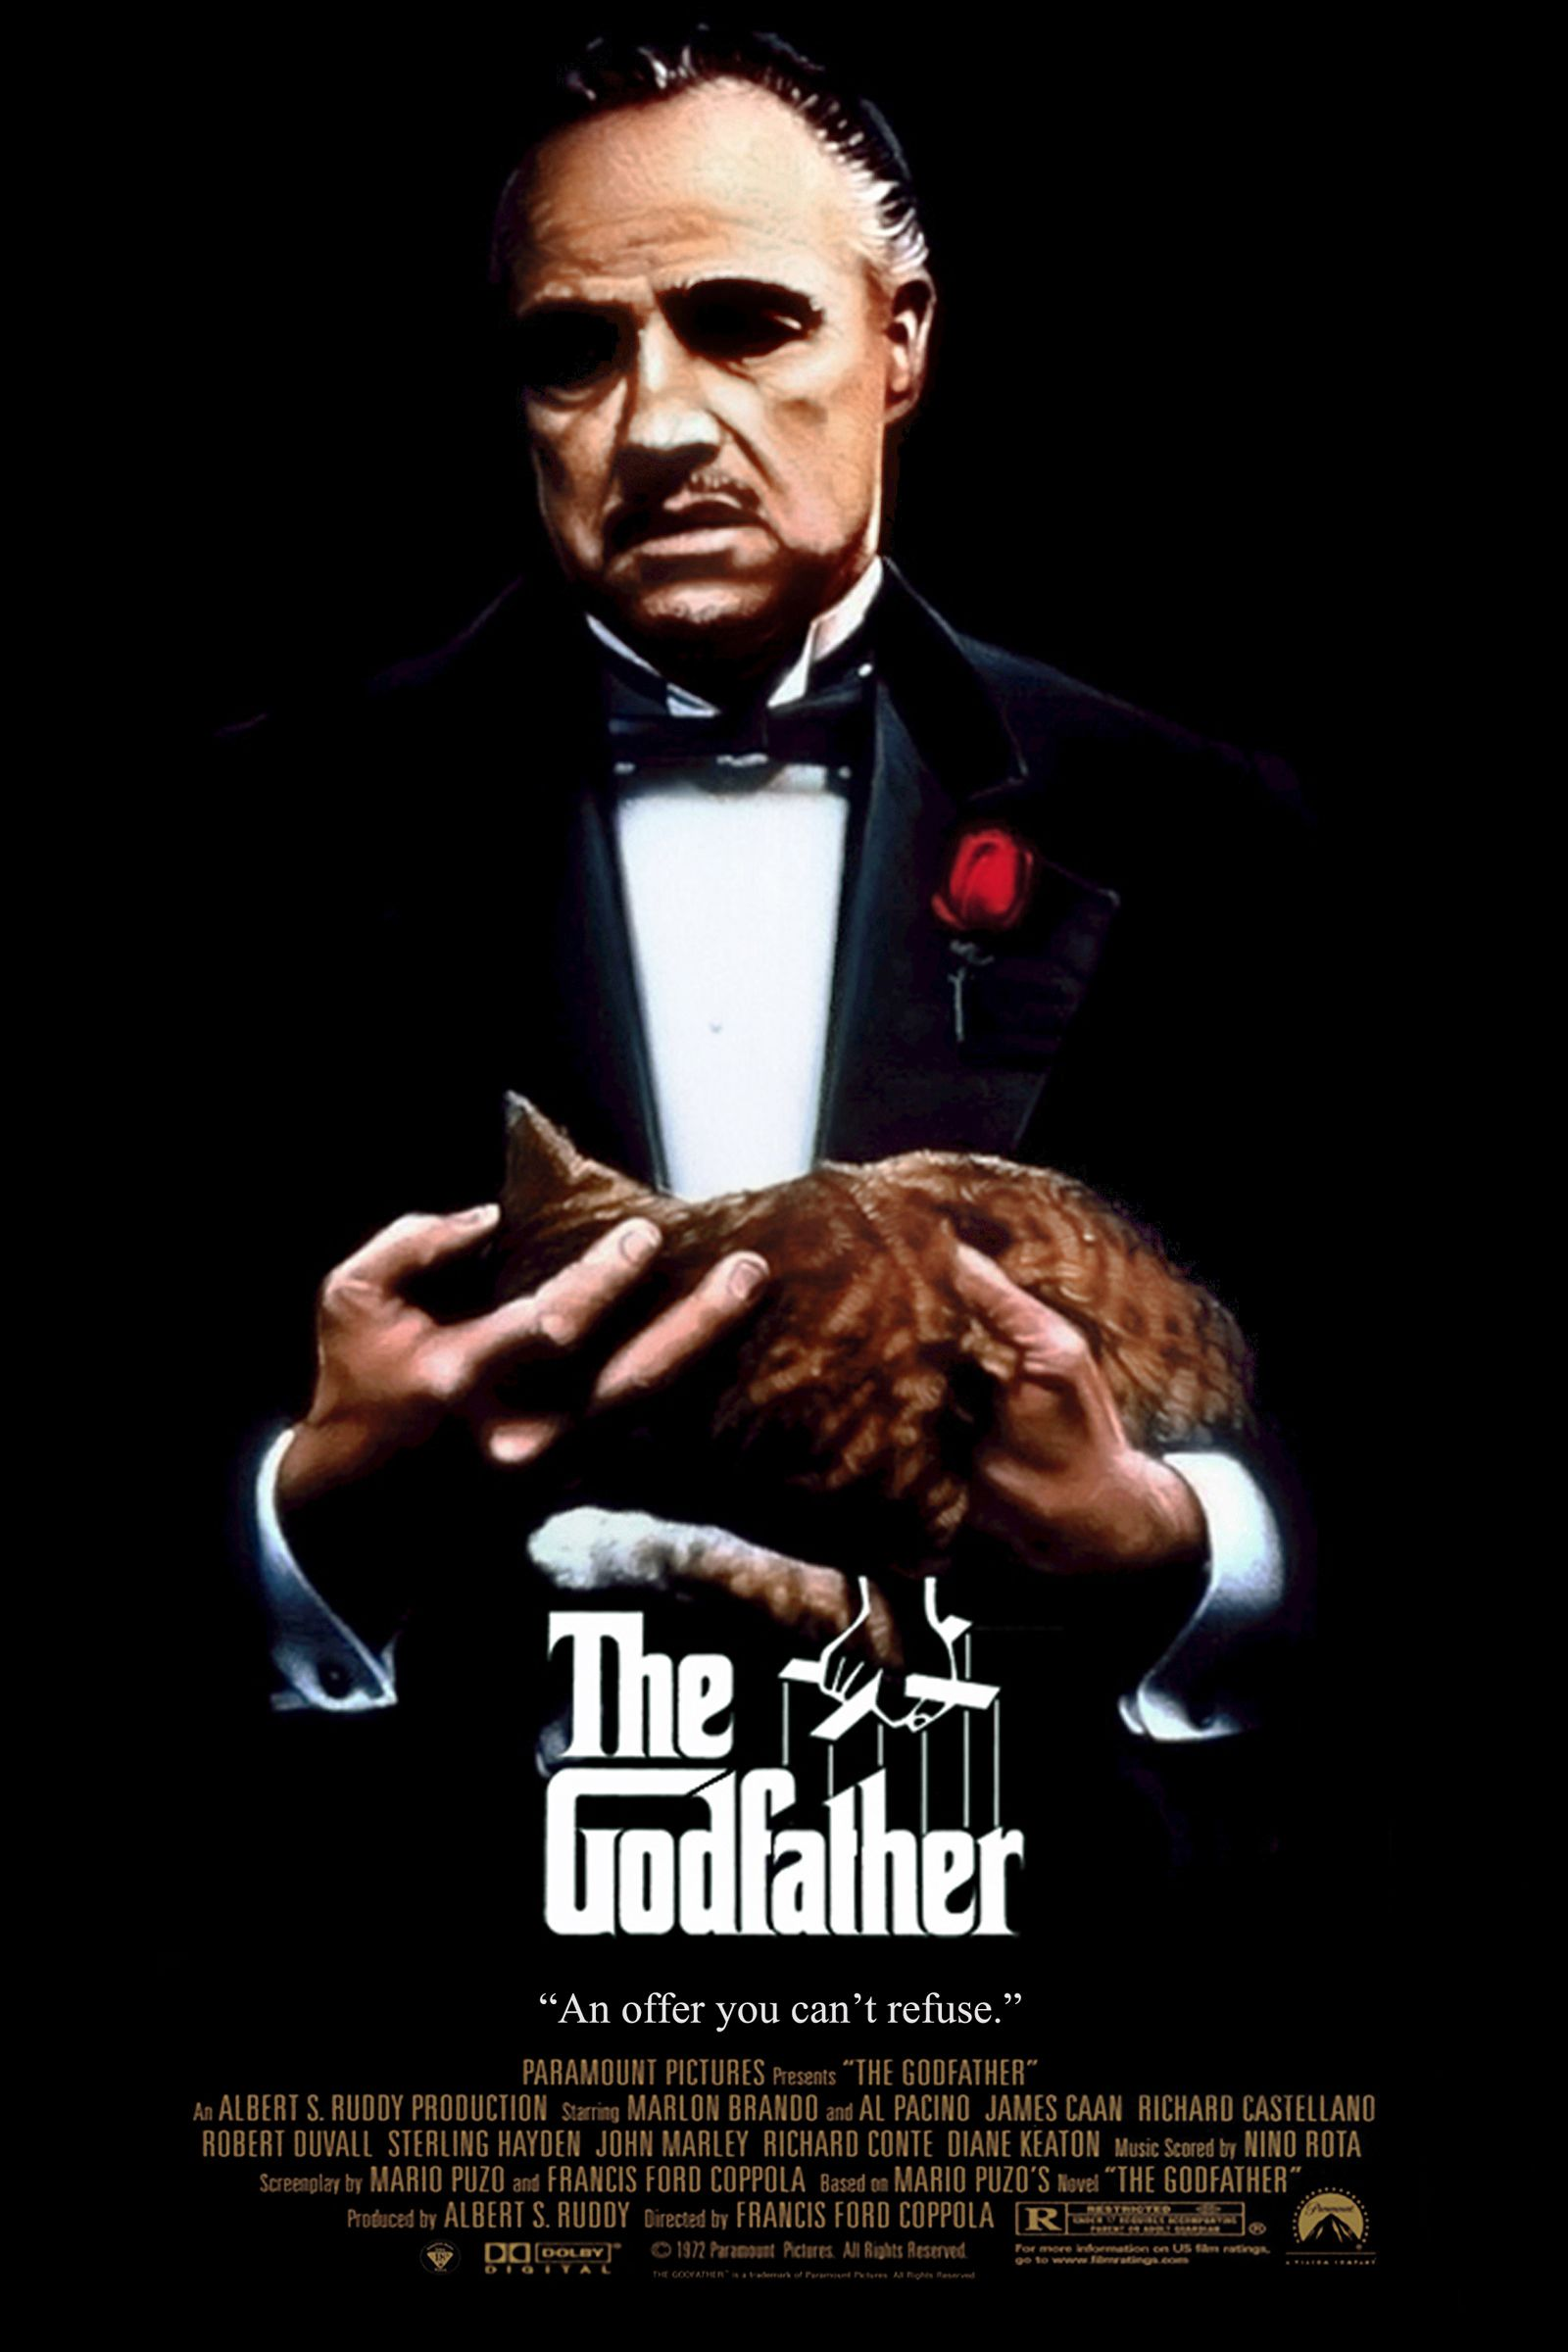 the godfather movie posters hd pinterest movie